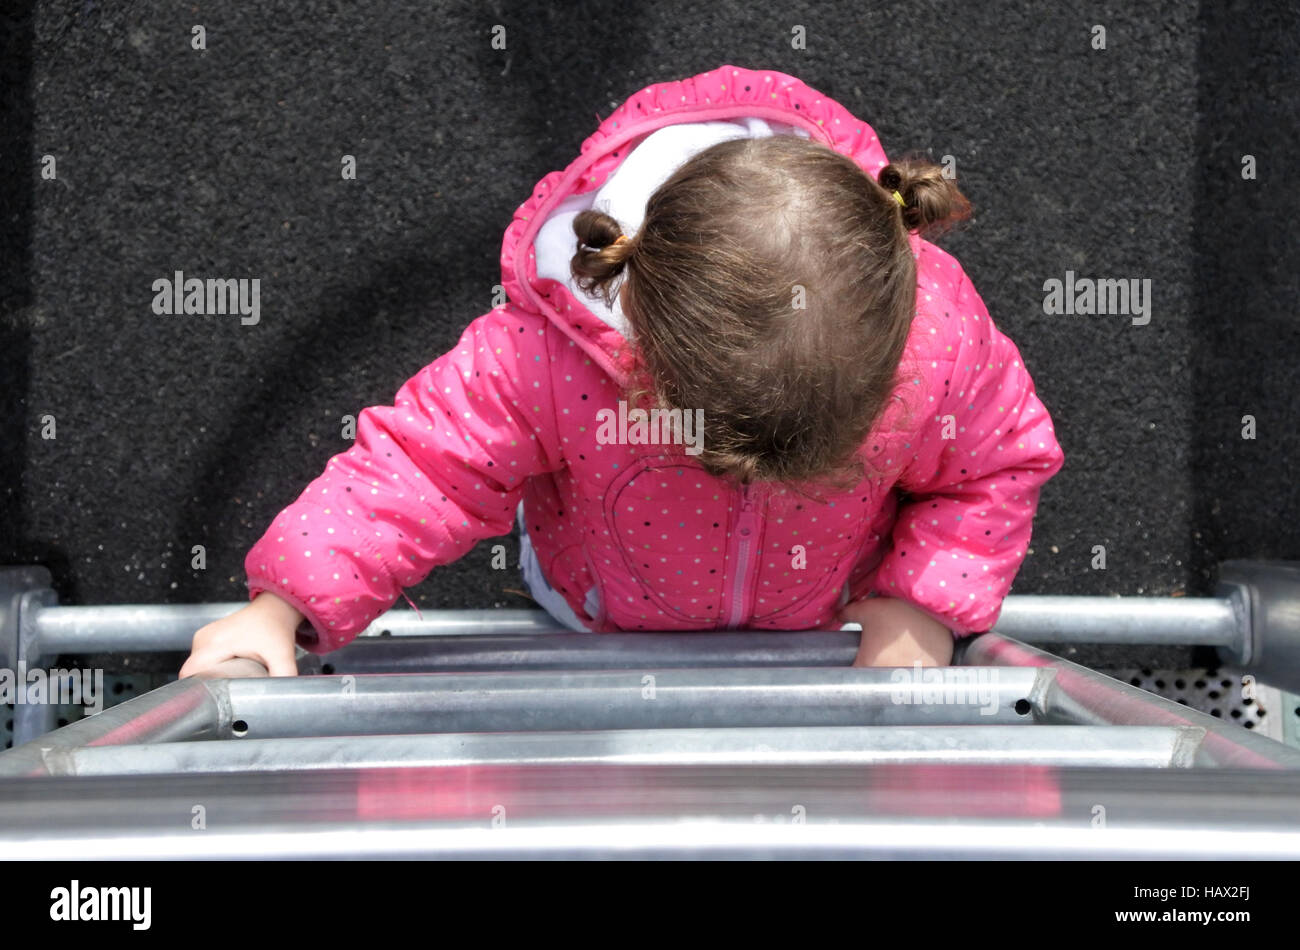 Flat lay view of a little girl (age 2) climbs on a ladder in a playground. Early childhood development concept. Stock Photo